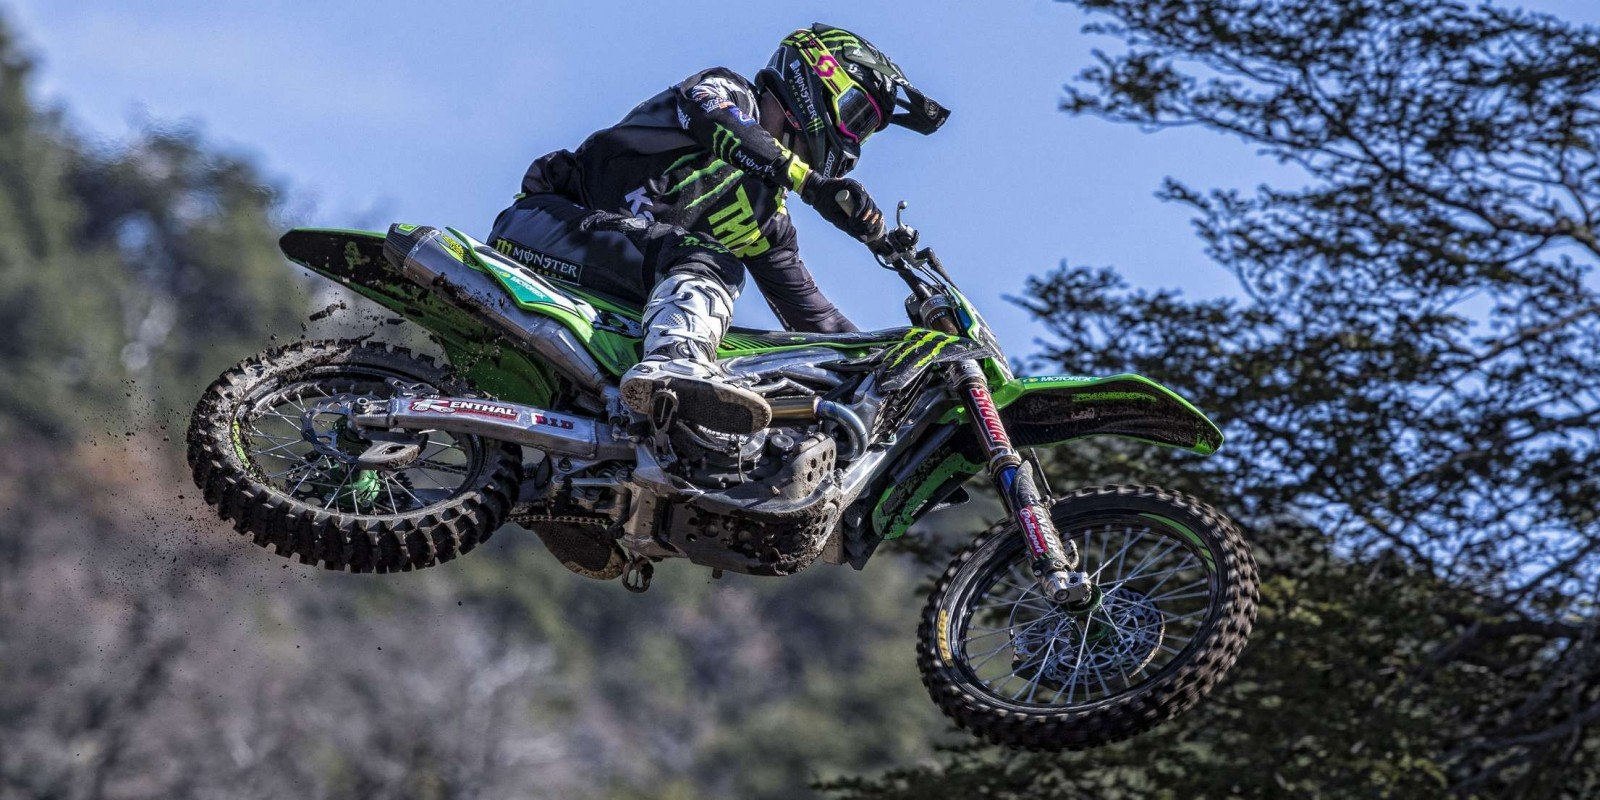 Clement Desalle at the 2018 Grand Prix of Patagonia-Argentina